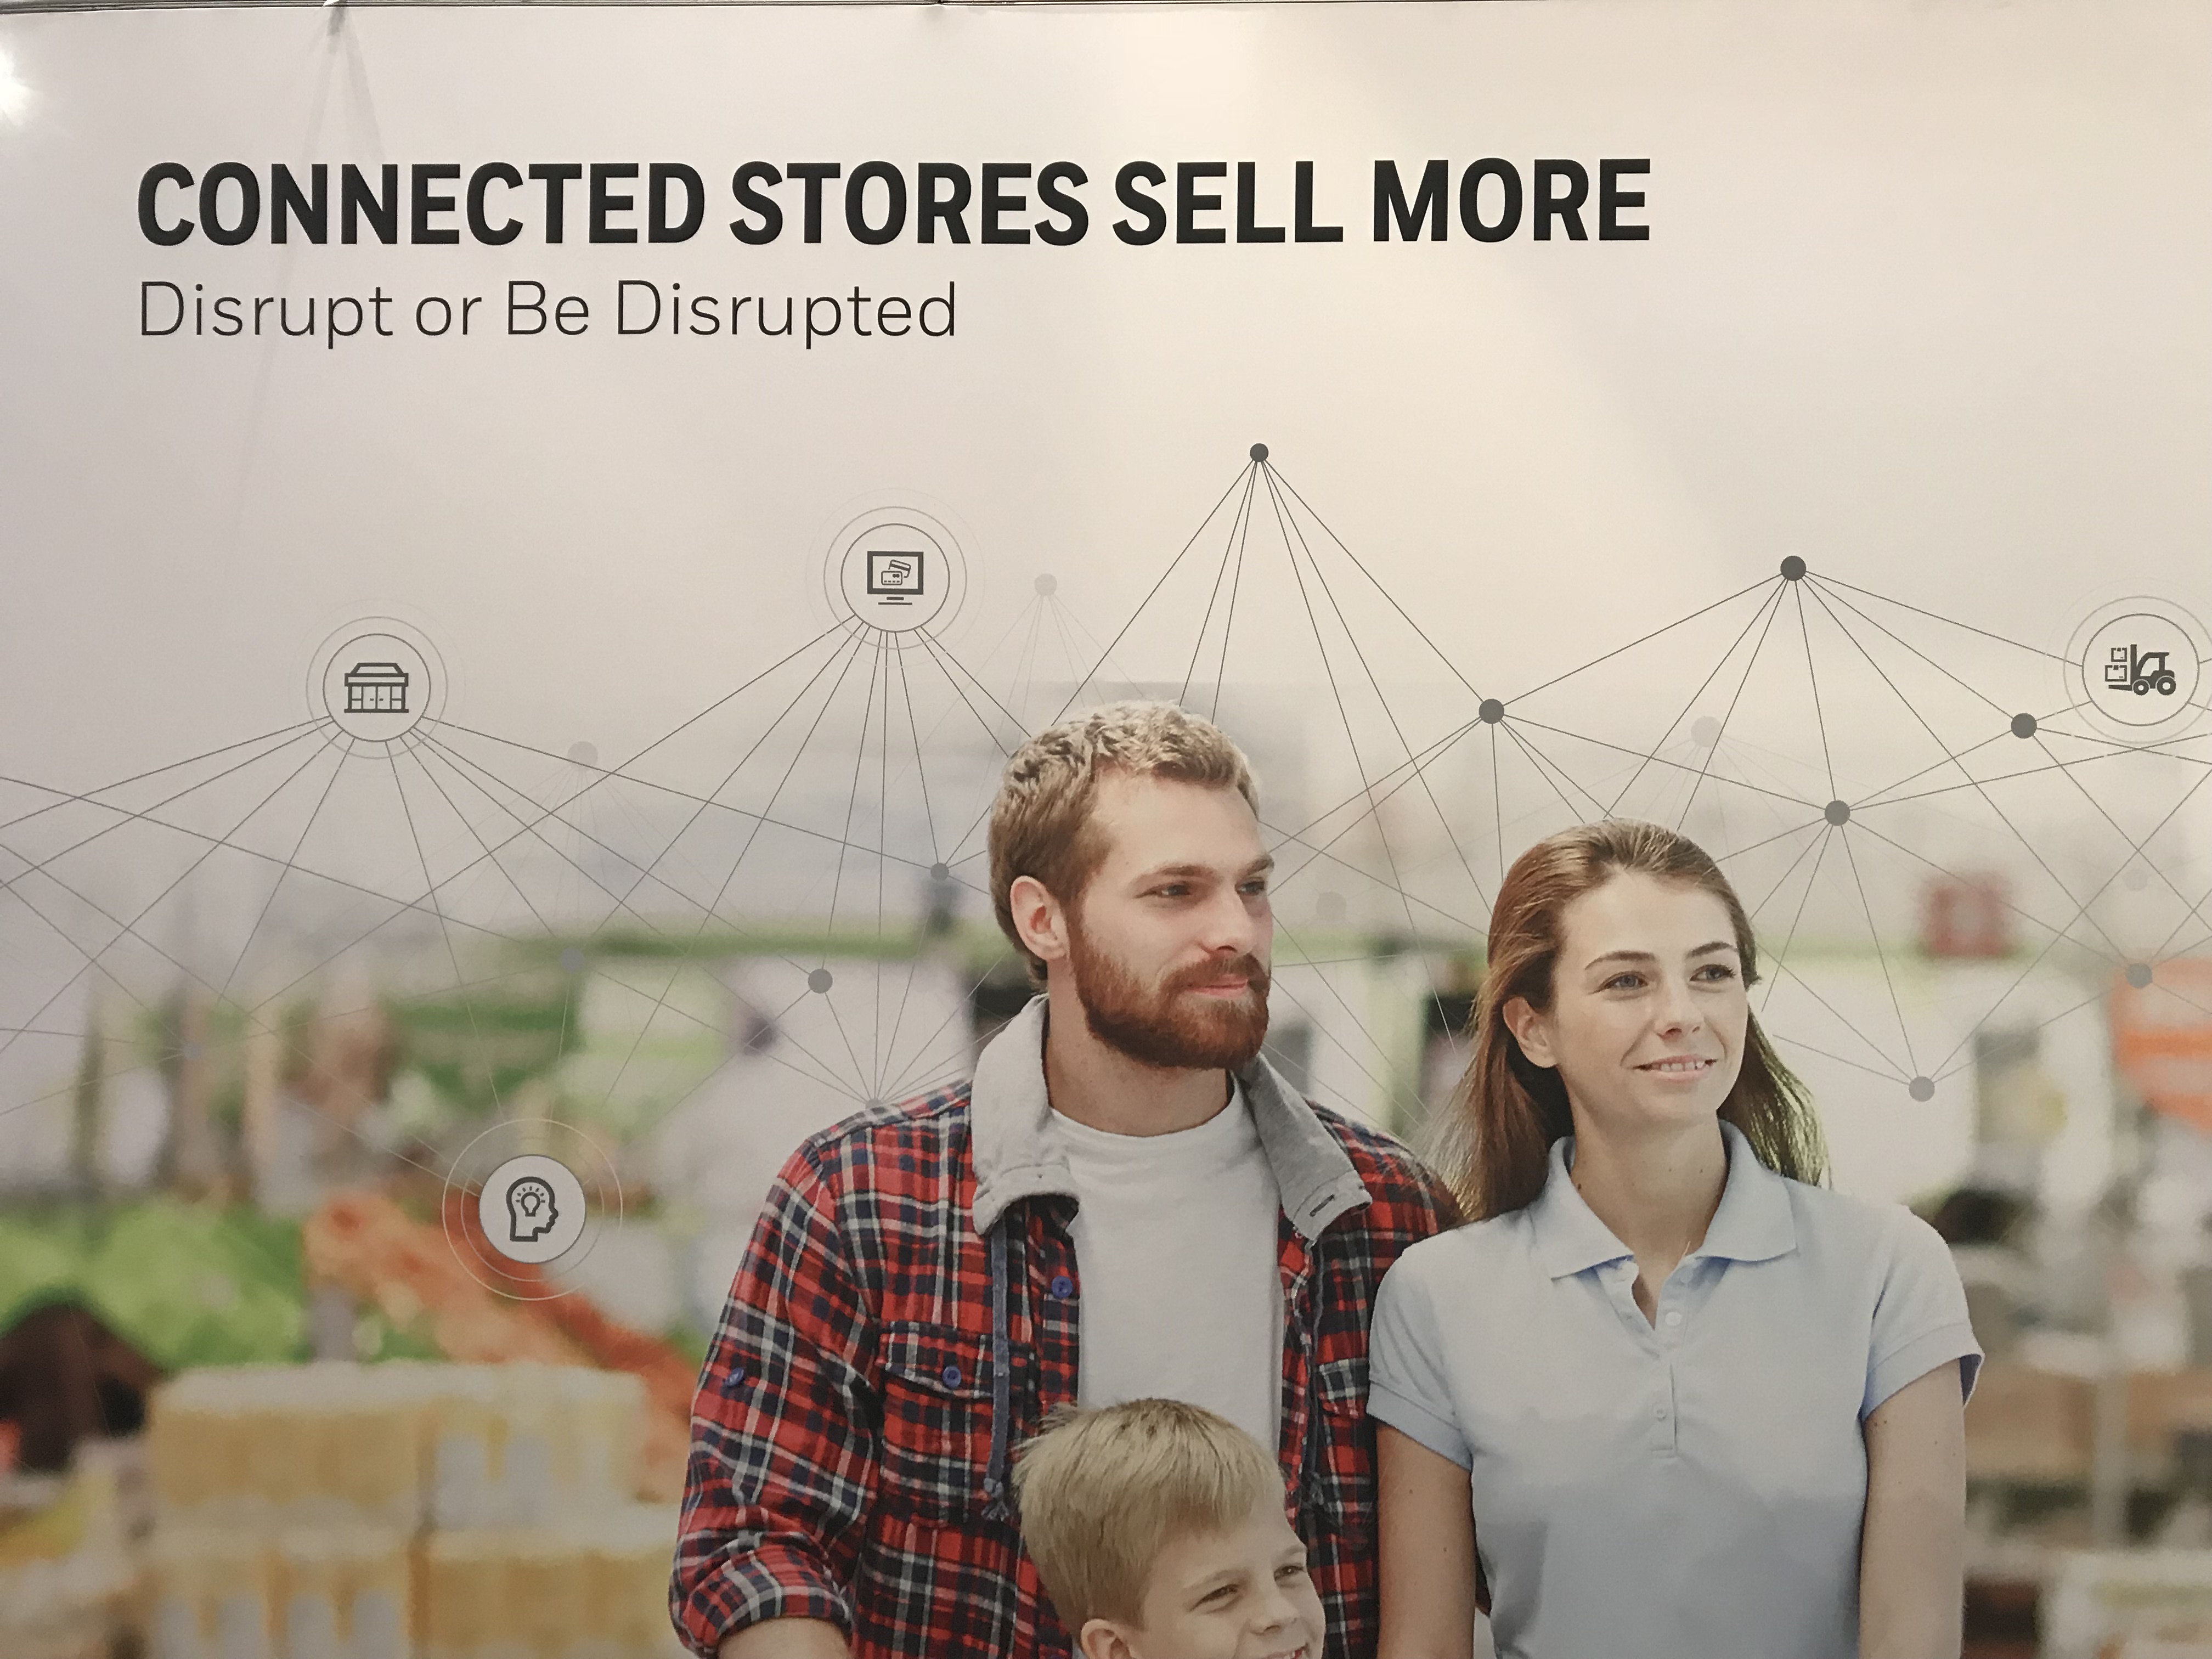 ConnectedStores